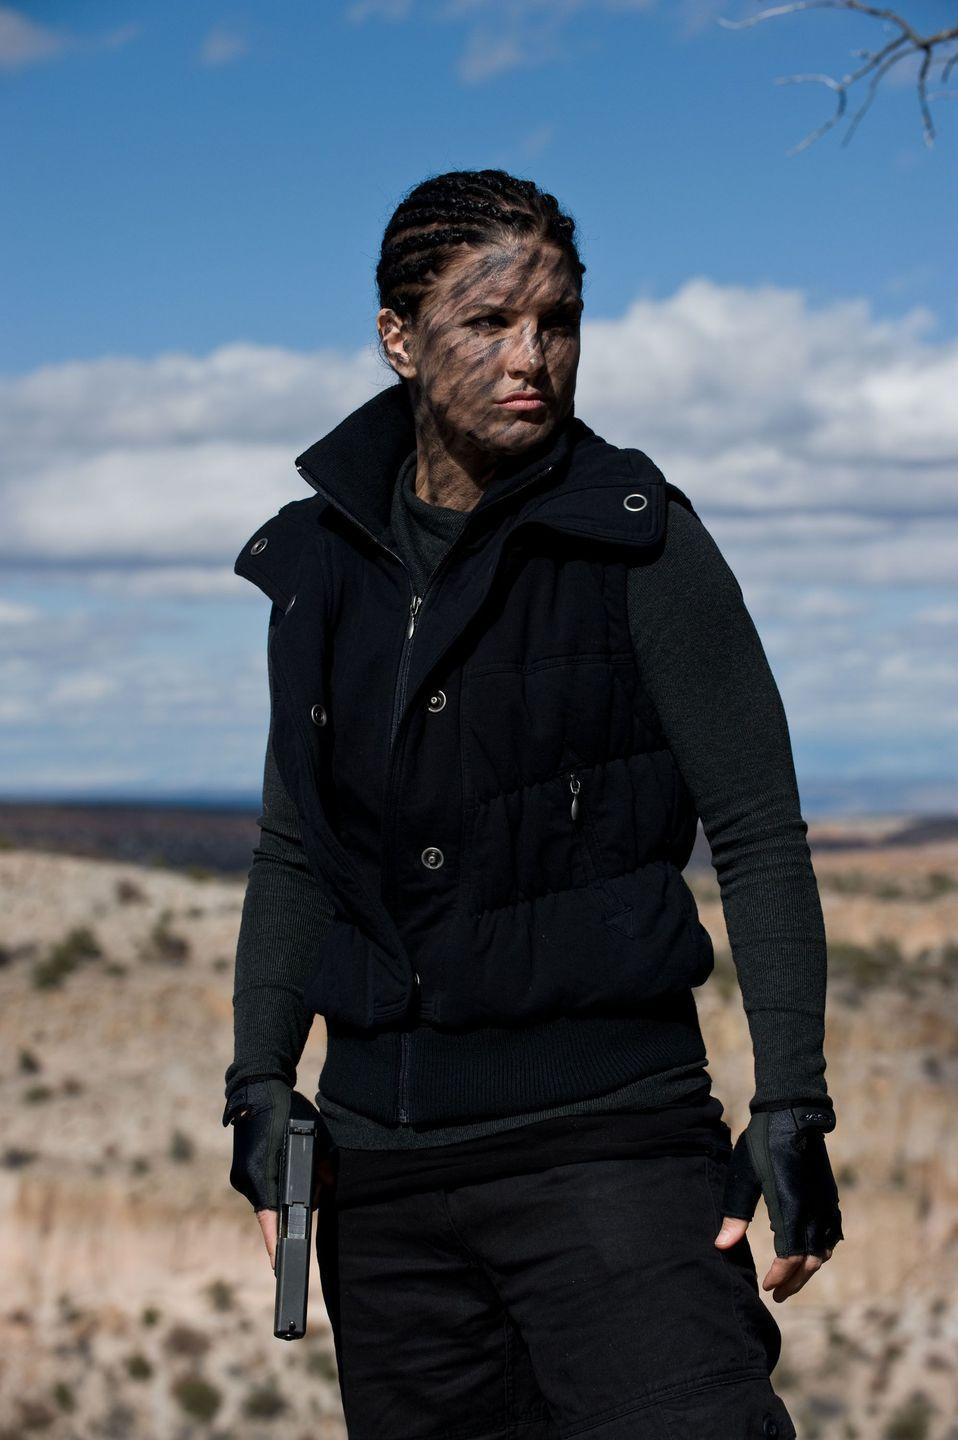 <p>About six people saw Steven Soderbergh's 2011 action thriller starring MMA fighter Gina Carano, but those who did were rewarded with some incredibly choreographed and brutal fight scenes in which she kills Channing Tatum, Ewan McGregor, and Michael Fassbender (with Antonio Banderas ready for his reckoning in the film's final shot).</p>